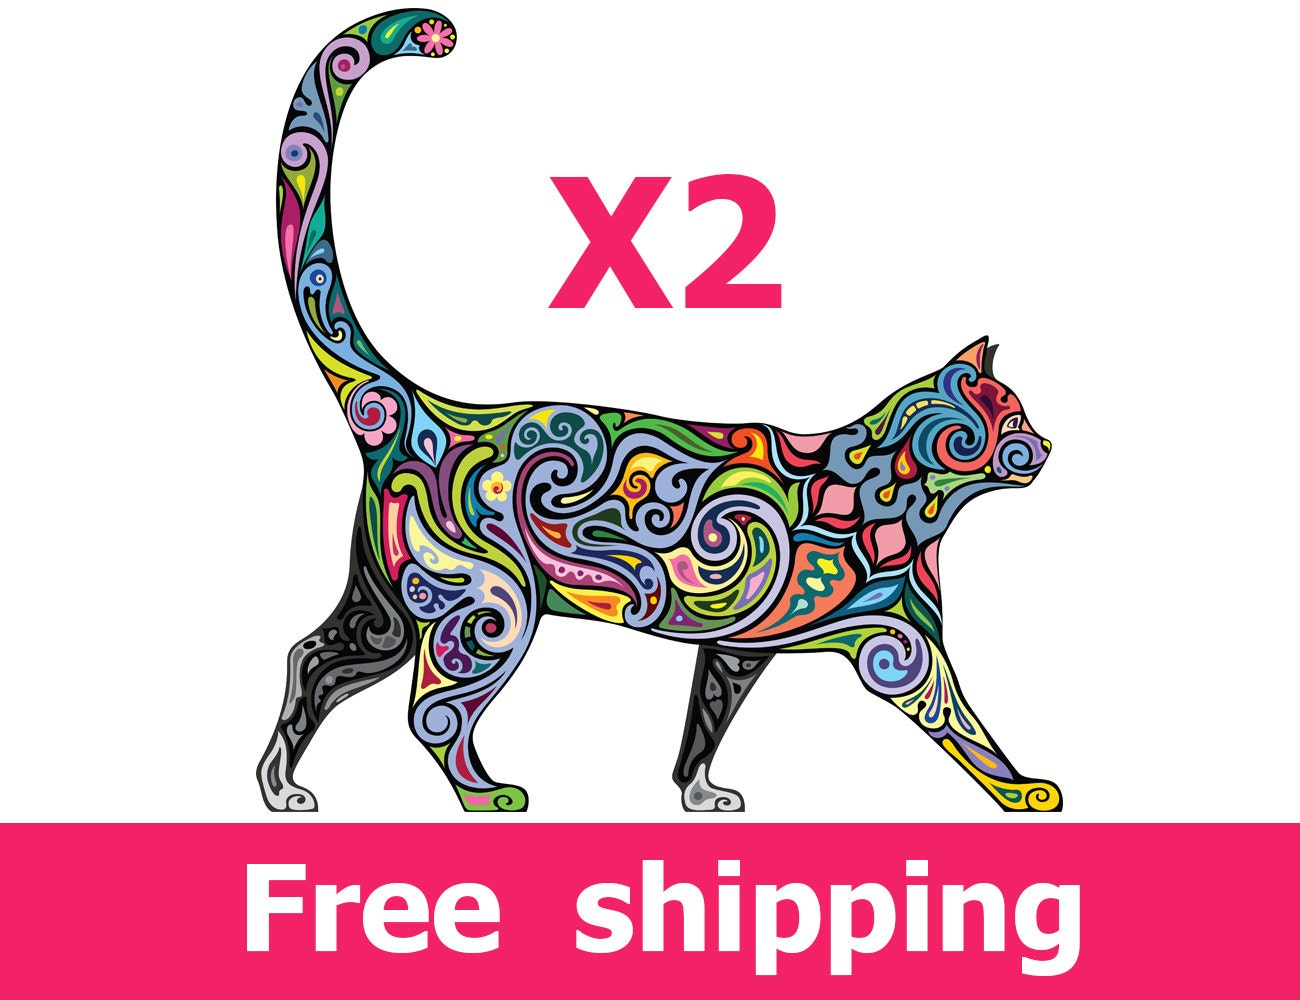 2 abstract cat wall decals elegance cat wall decal design